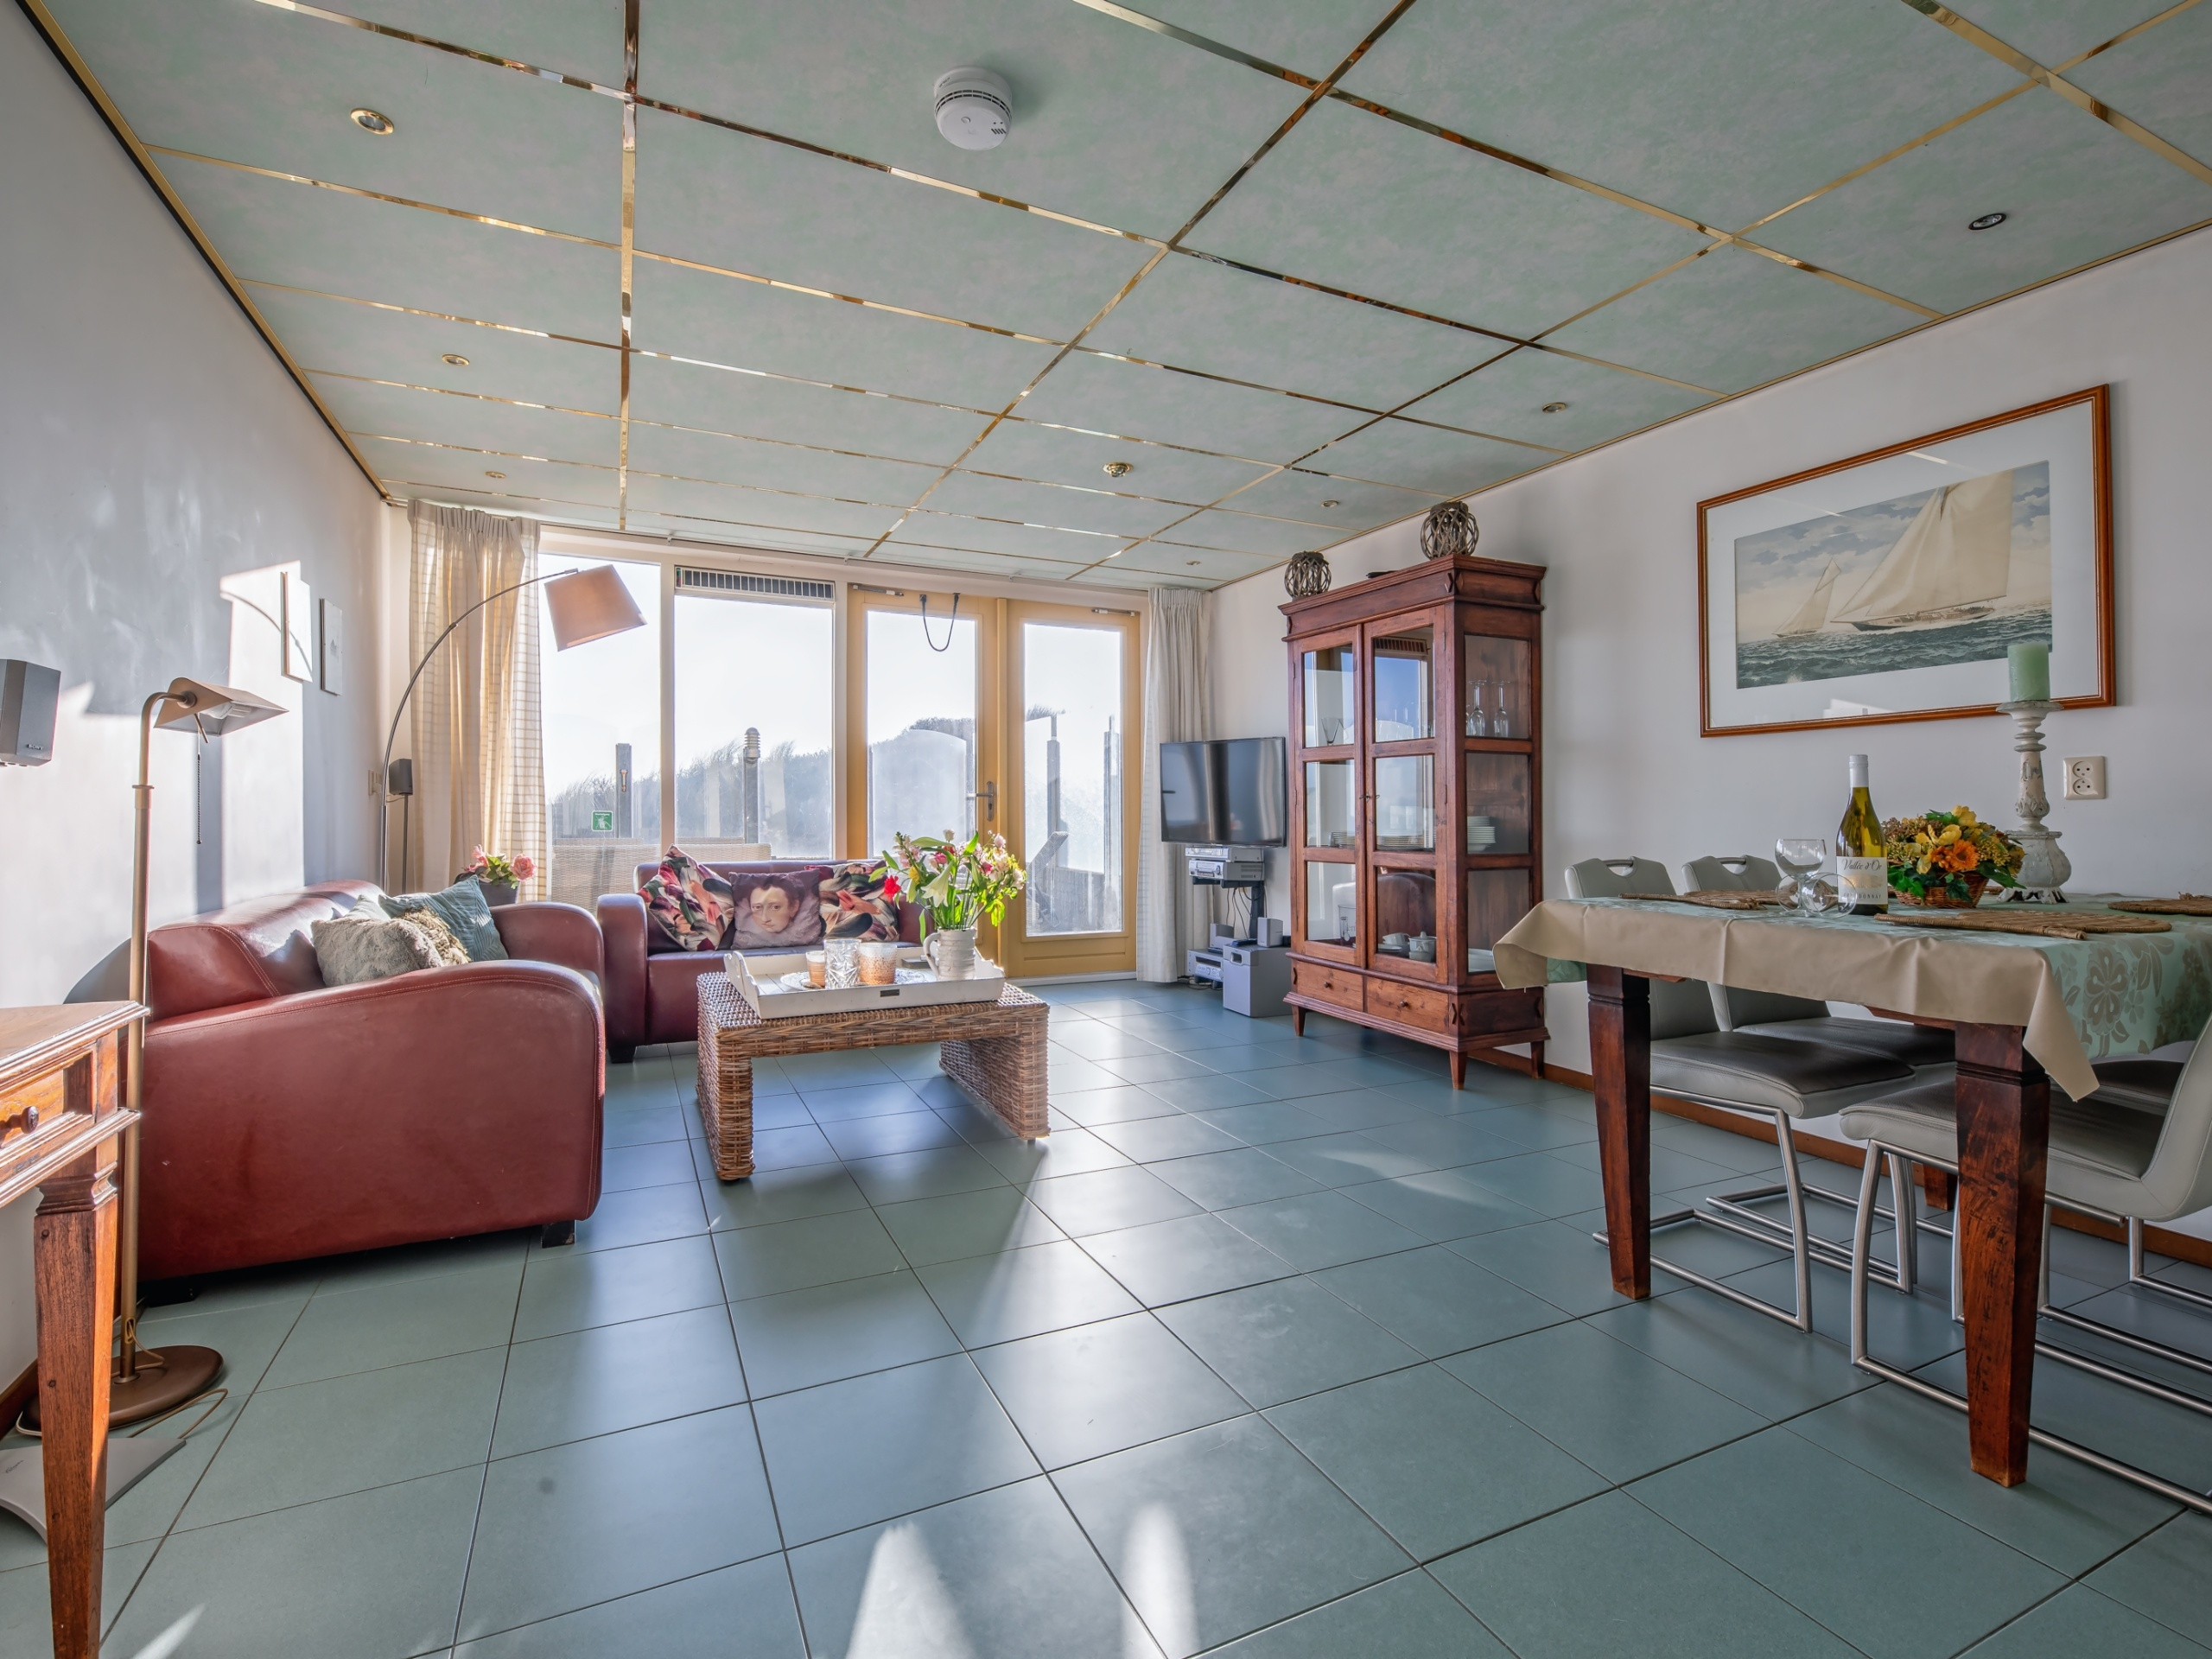 Comfortable apartment with private terrace right by the sea at De Koog